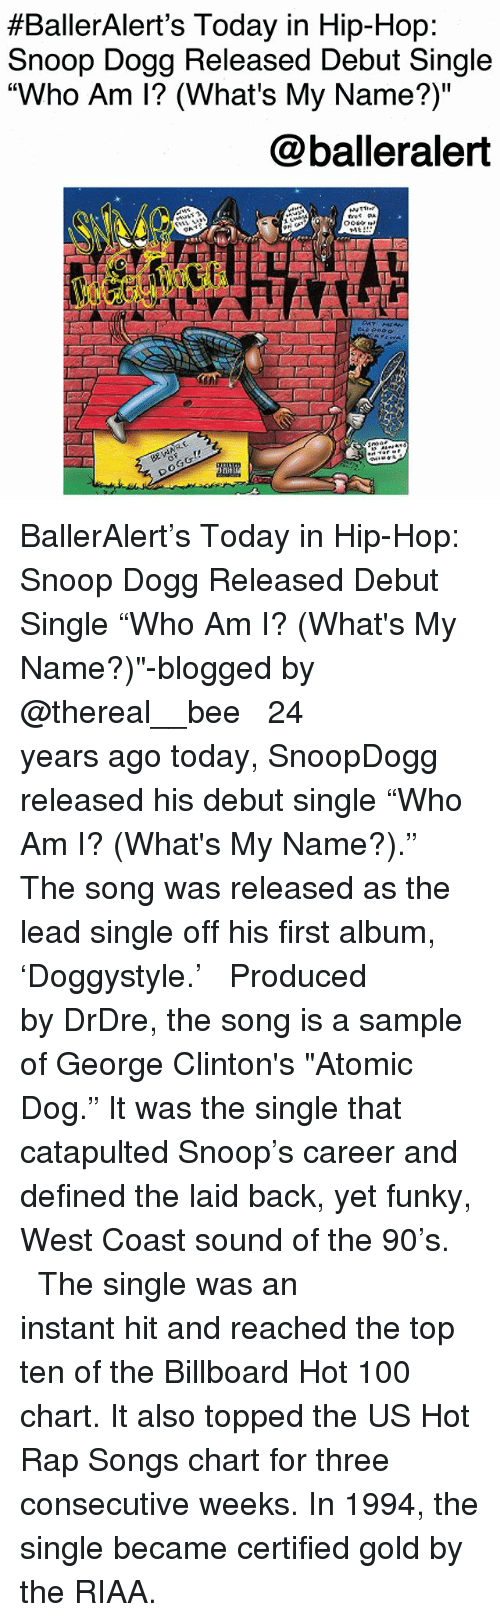 """billboard hot 100:  #BallerAlert's Today in Hip-Hop  Snoop Dogg Released Debut Single  """"Who Am I? (What's My Name?)""""  @balleralert  TAt  (a BallerAlert's Today in Hip-Hop: Snoop Dogg Released Debut Single """"Who Am I? (What's My Name?)""""-blogged by @thereal__bee ⠀⠀⠀⠀⠀⠀⠀⠀⠀ ⠀⠀ 24 years ago today, SnoopDogg released his debut single """"Who Am I? (What's My Name?)."""" The song was released as the lead single off his first album, 'Doggystyle.' ⠀⠀⠀⠀⠀⠀⠀⠀⠀ ⠀⠀ Produced by DrDre, the song is a sample of George Clinton's """"Atomic Dog."""" It was the single that catapulted Snoop's career and defined the laid back, yet funky, West Coast sound of the 90's. ⠀⠀⠀⠀⠀⠀⠀⠀⠀ ⠀⠀ The single was an instant hit and reached the top ten of the Billboard Hot 100 chart. It also topped the US Hot Rap Songs chart for three consecutive weeks. In 1994, the single became certified gold by the RIAA."""